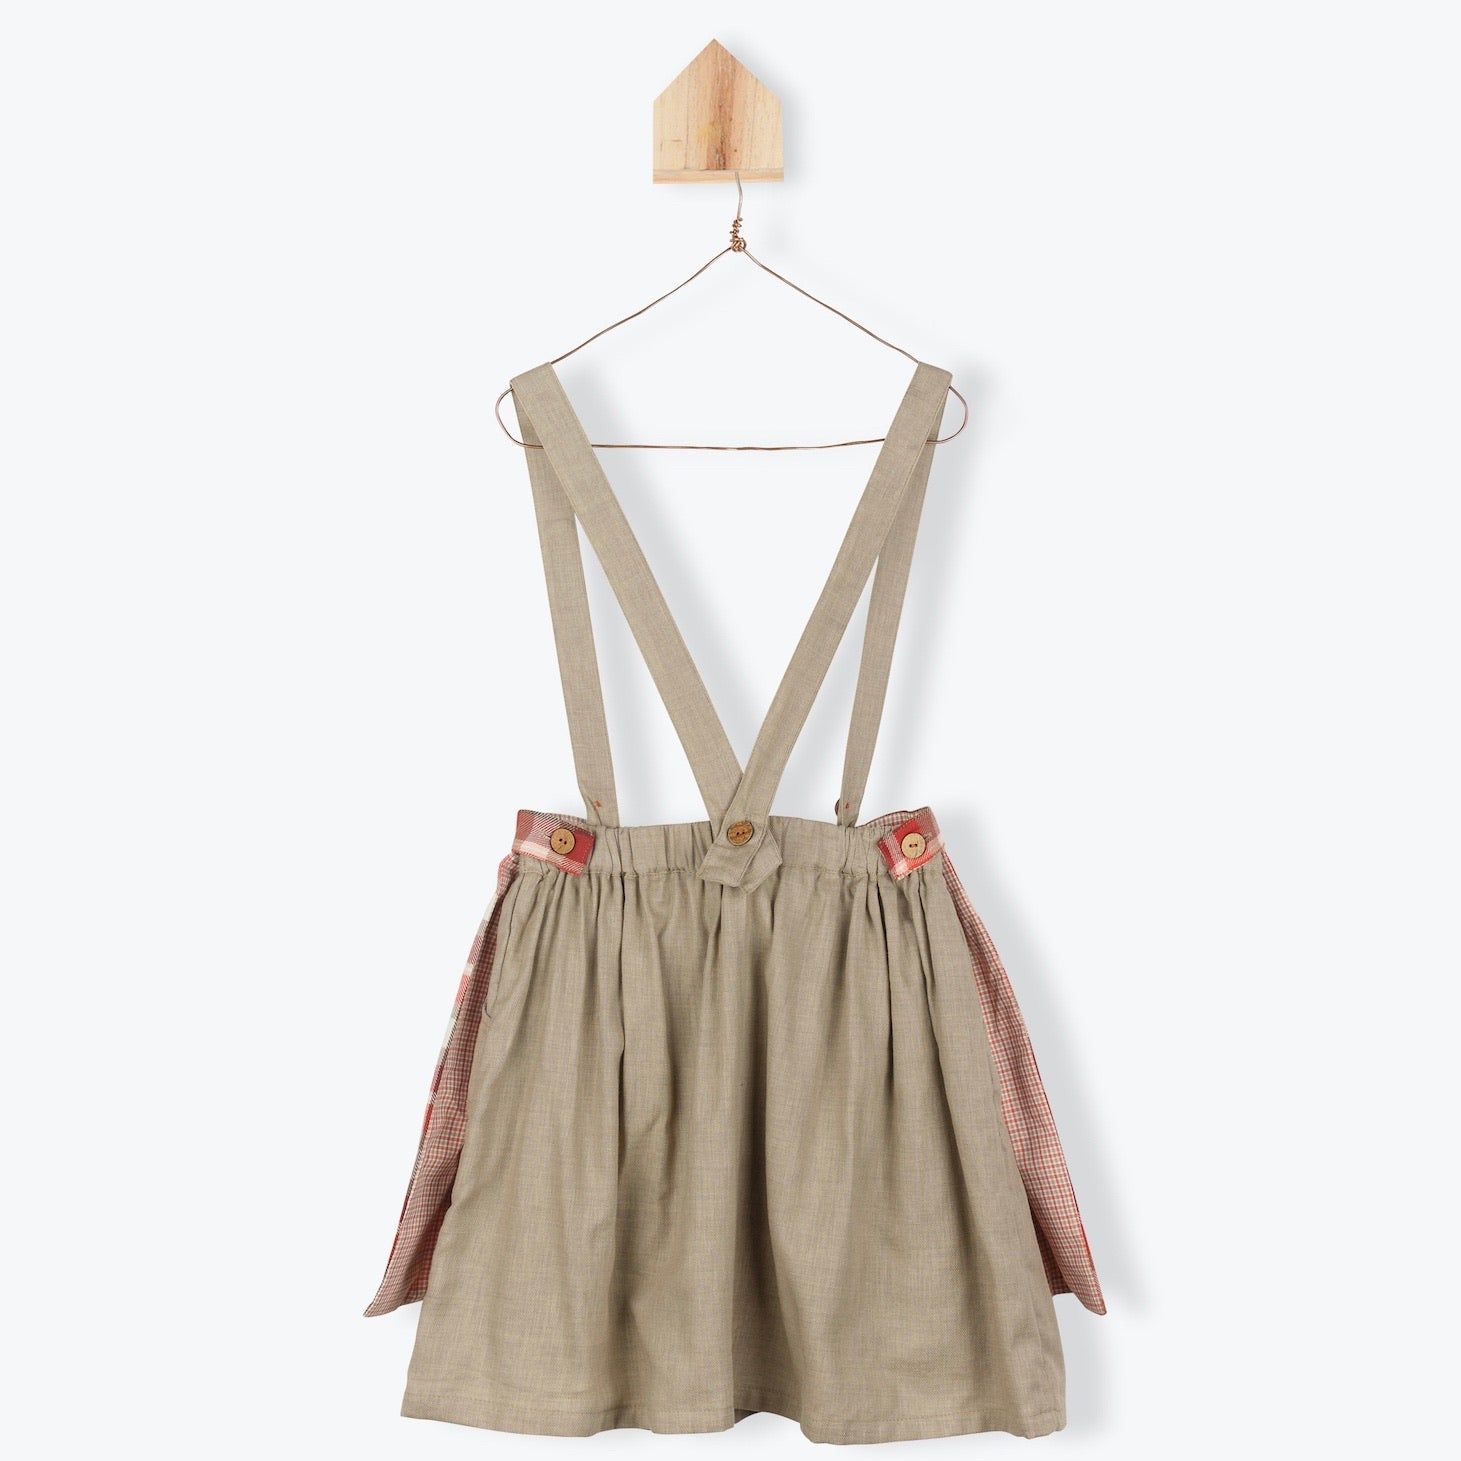 Apron Skirt with detachable straps